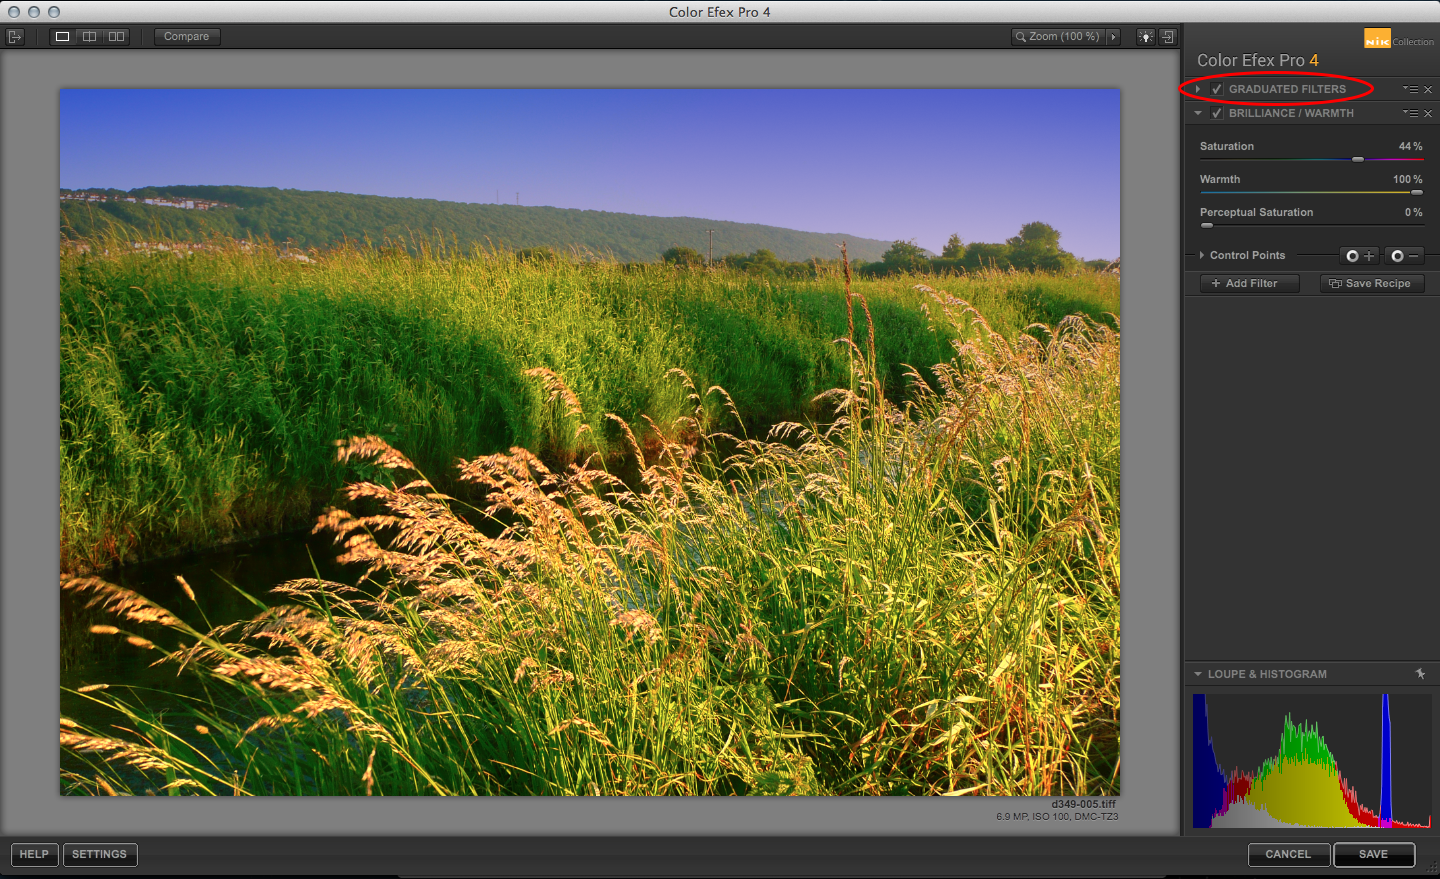 Color Efex Pro stacking filters